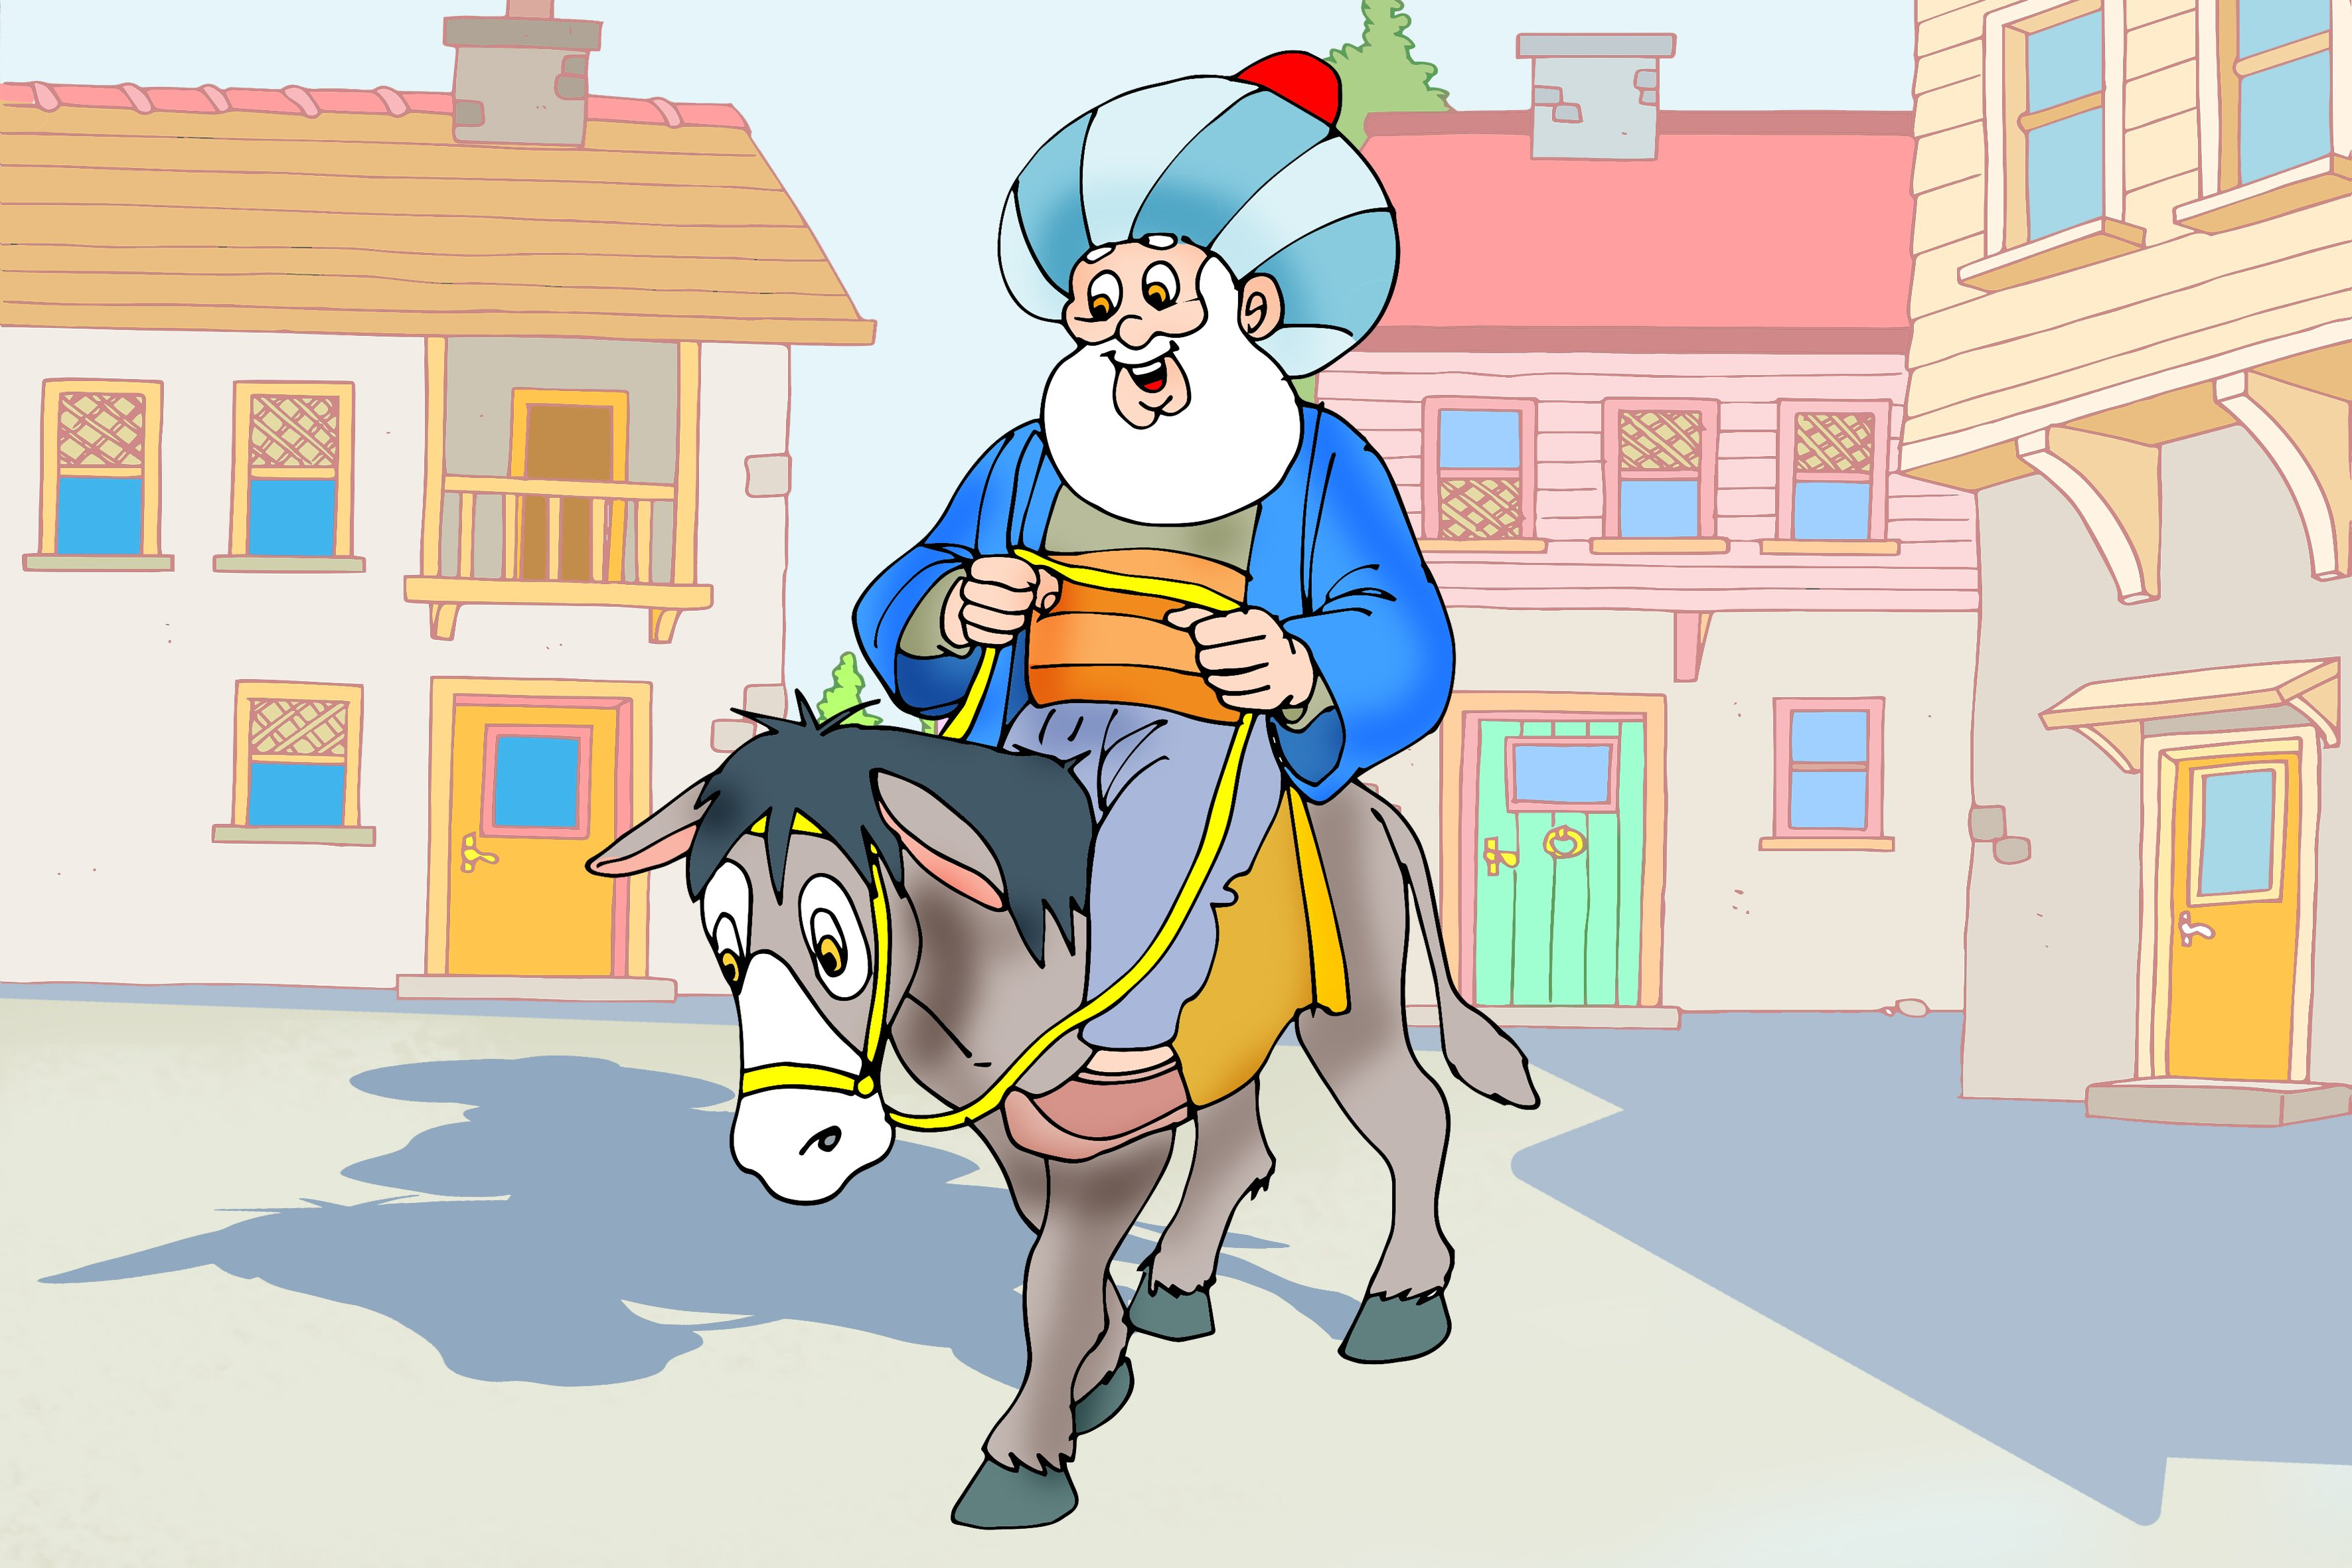 Seljuq satirist Nasreddin Hodja is a unique and entertaining character from Turkish folklore. (İStock Photo)